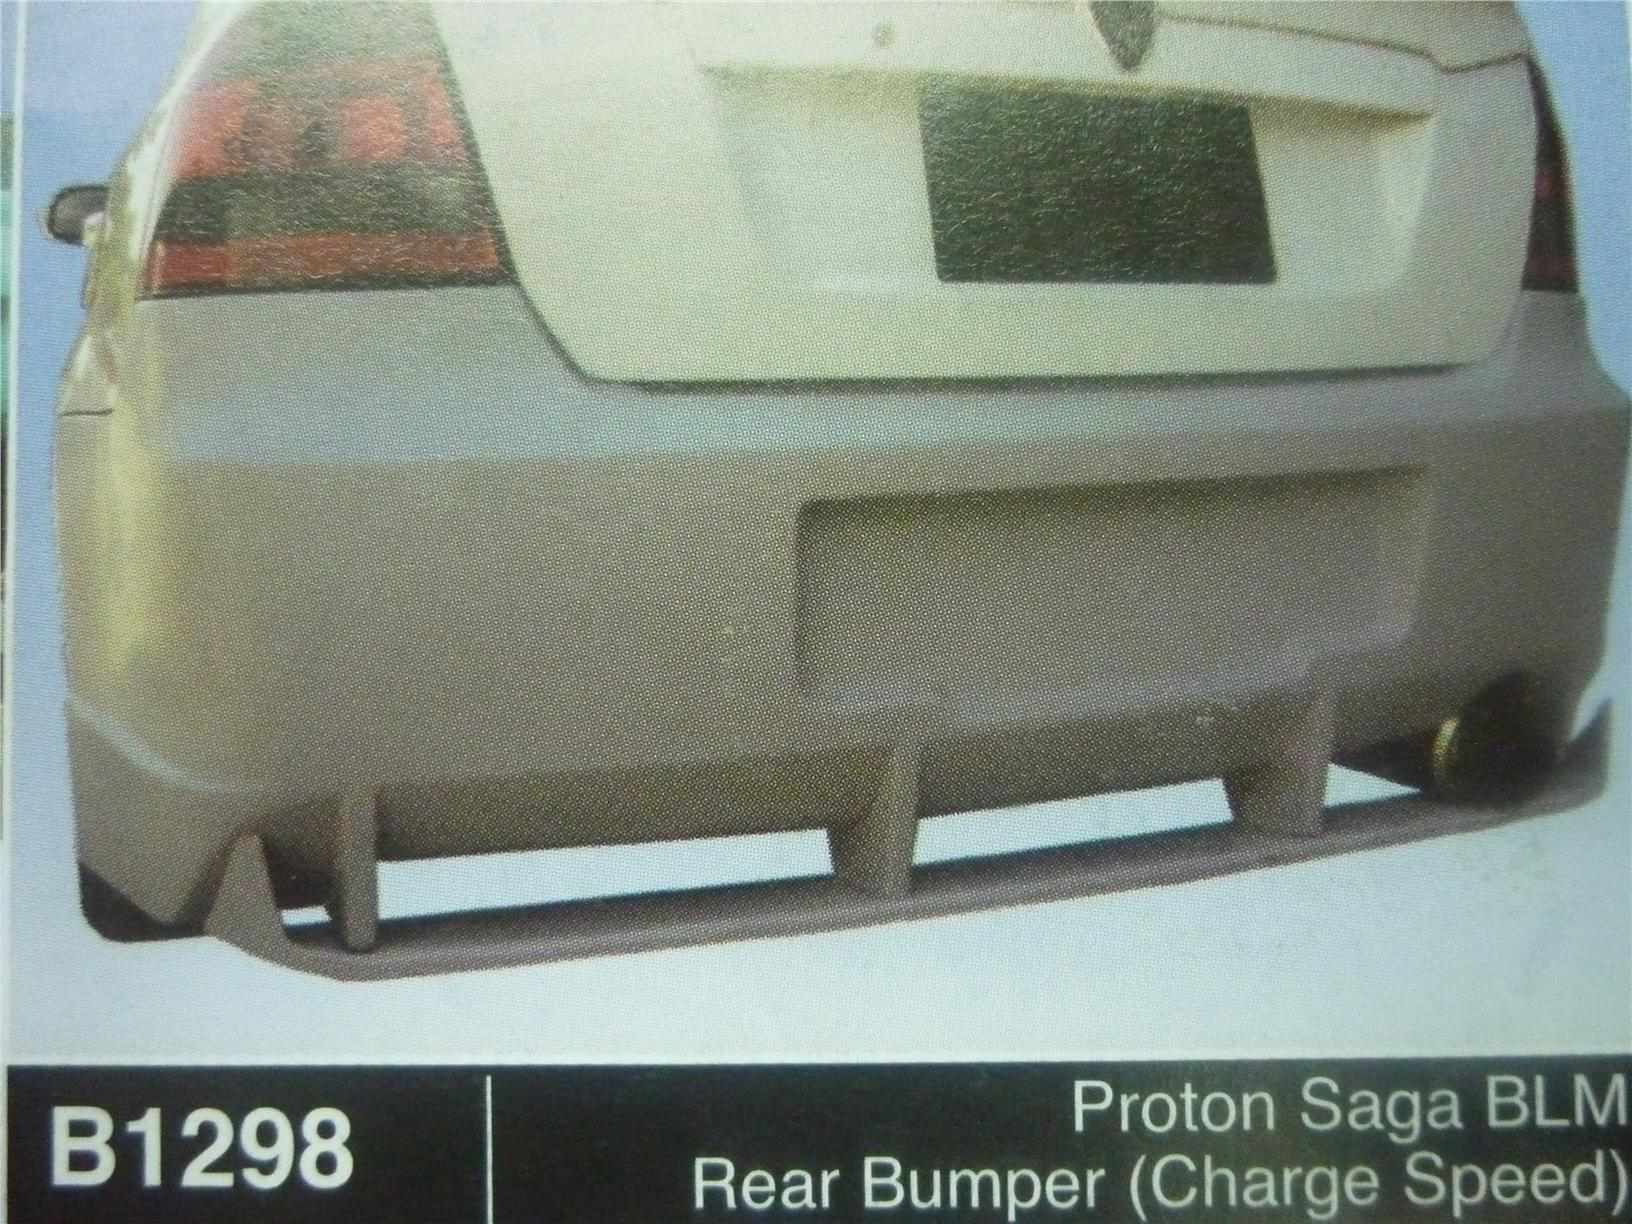 PROTON SAGA BLM REAR BUMPER CHARGE SPEED B1298